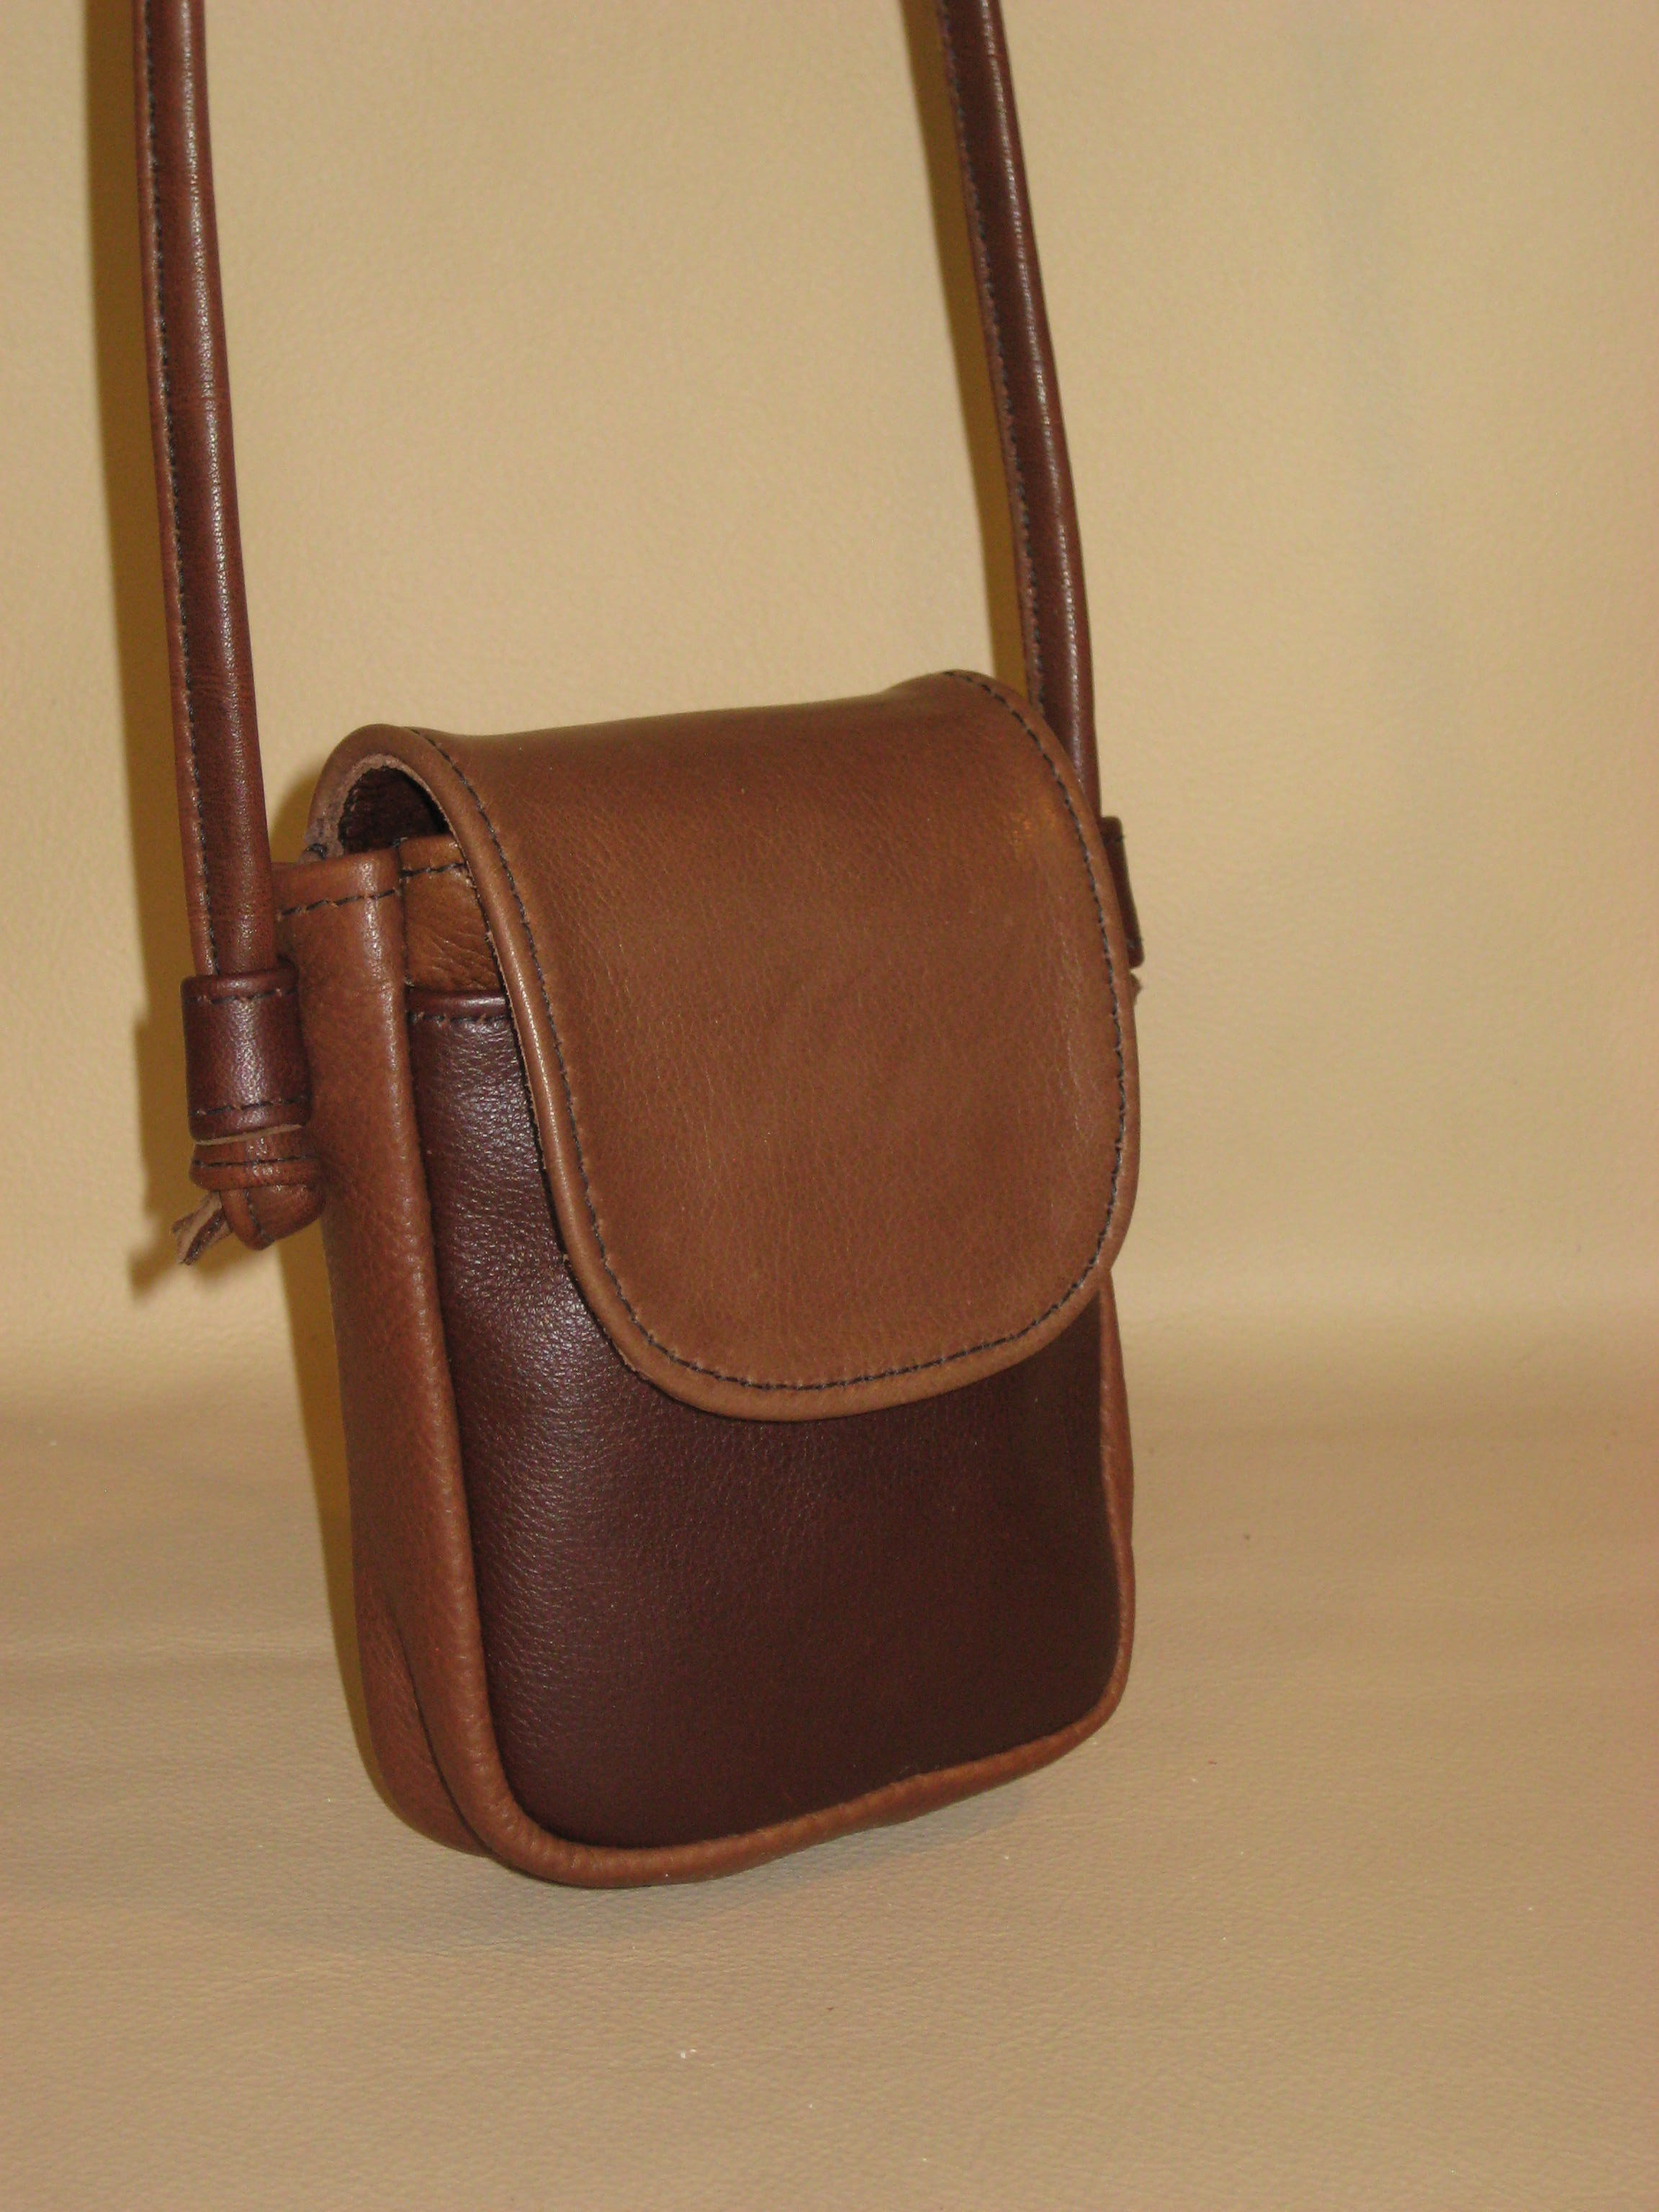 Lorenzi Leather Handbags Purses Totes Messenger Bags In Our New Collection